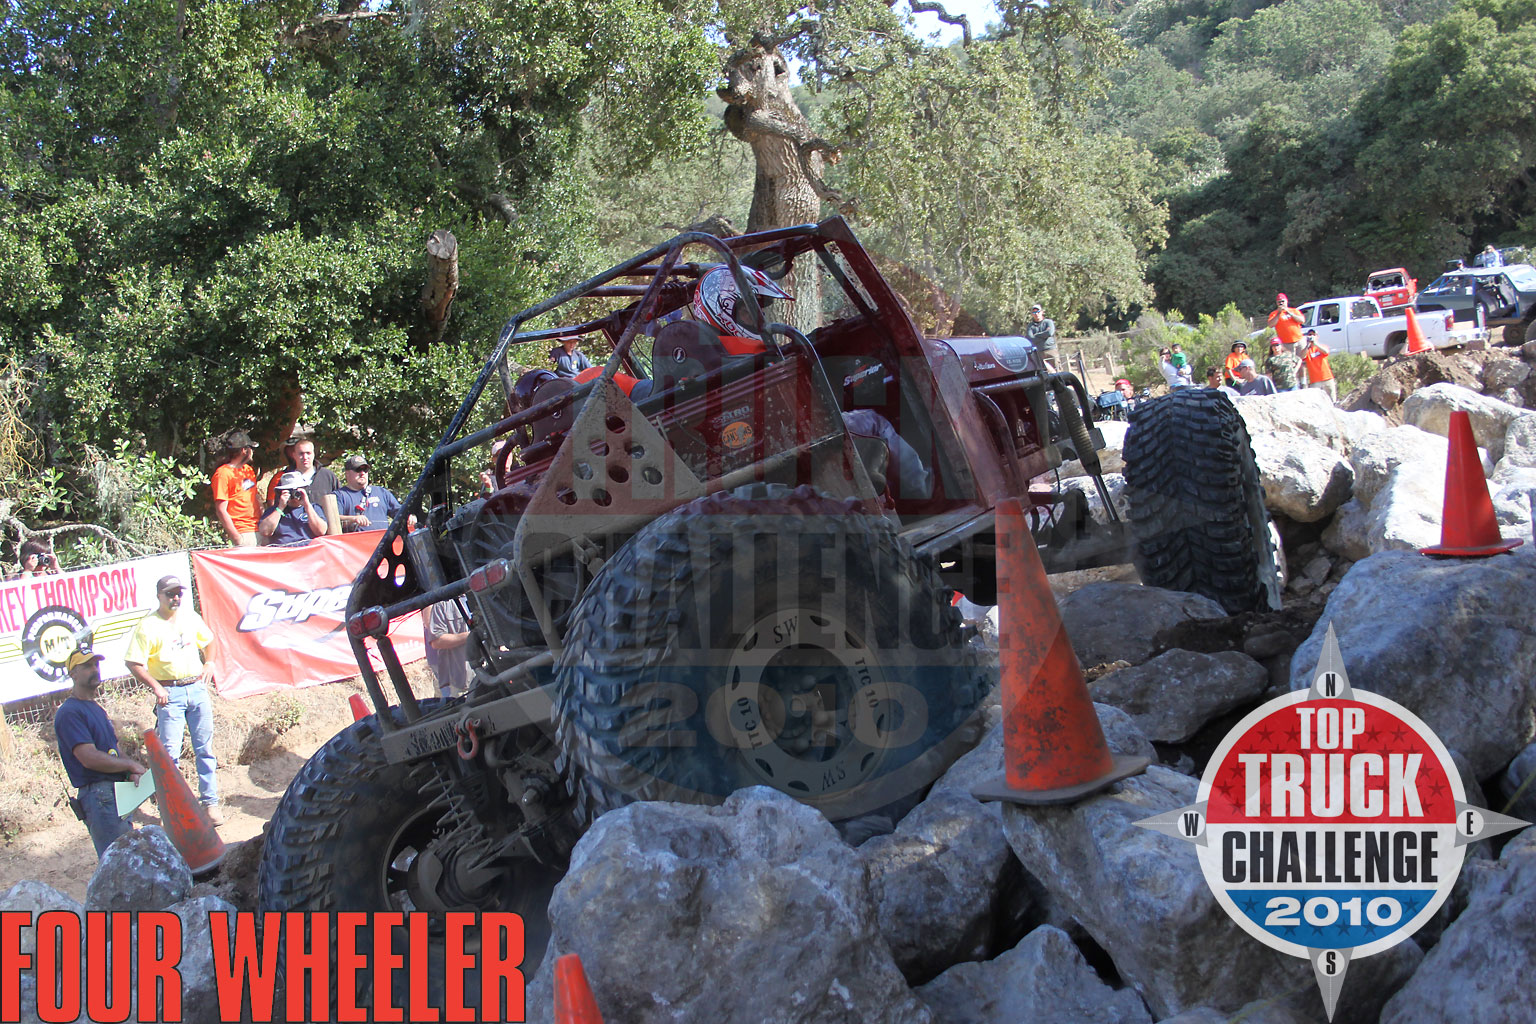 2010 Top Truck Challenge Mini Rubicon Pj Hale 1948 Willys Buggy